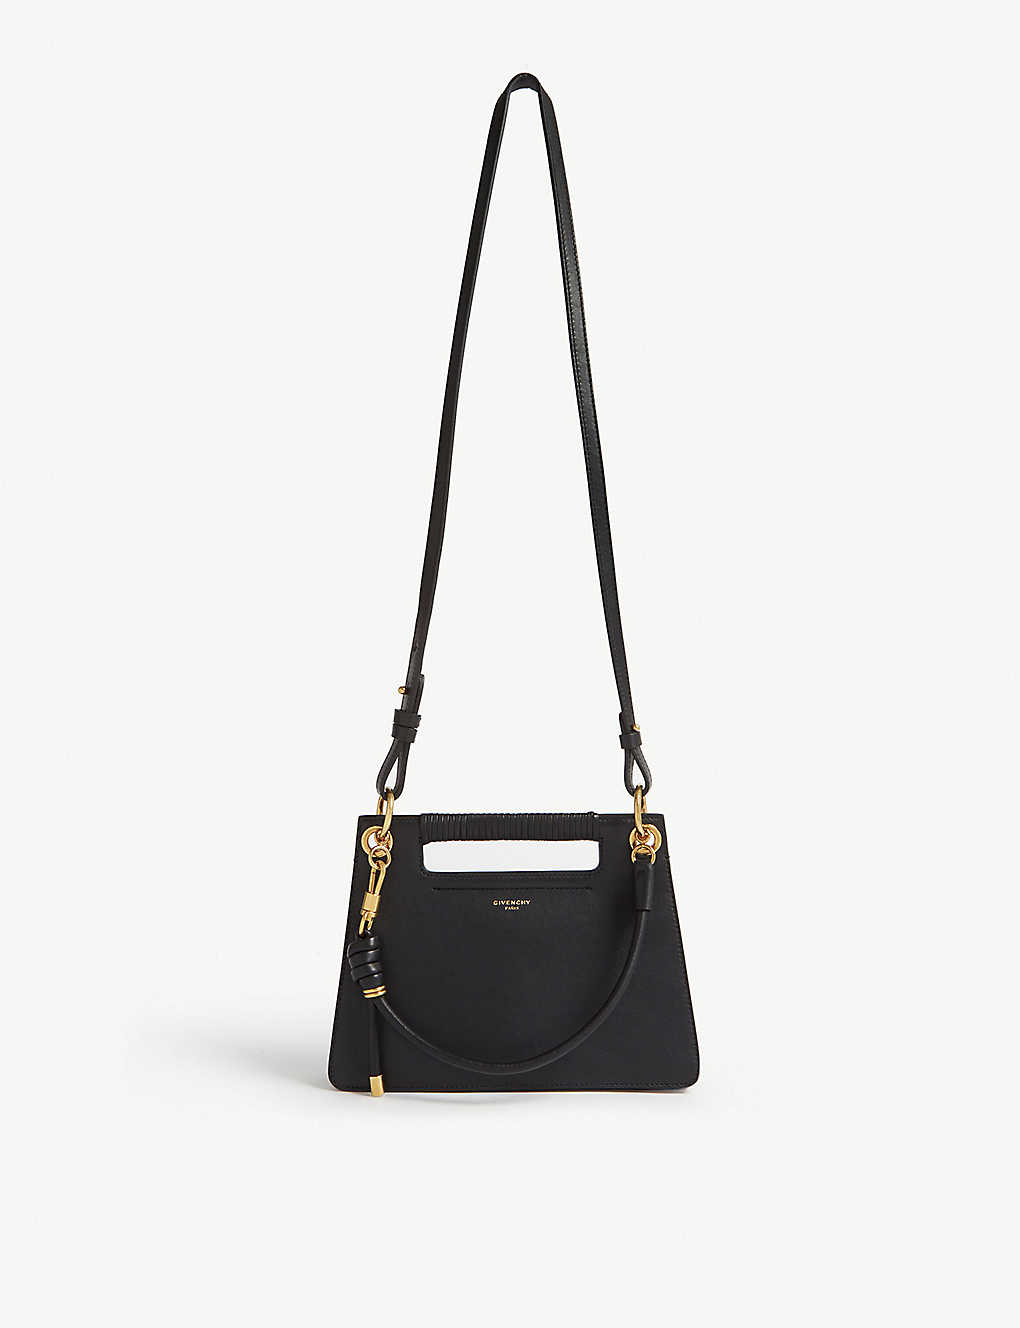 ed5012ace2 GIVENCHY - Whip small leather cross-body bag | Selfridges.com